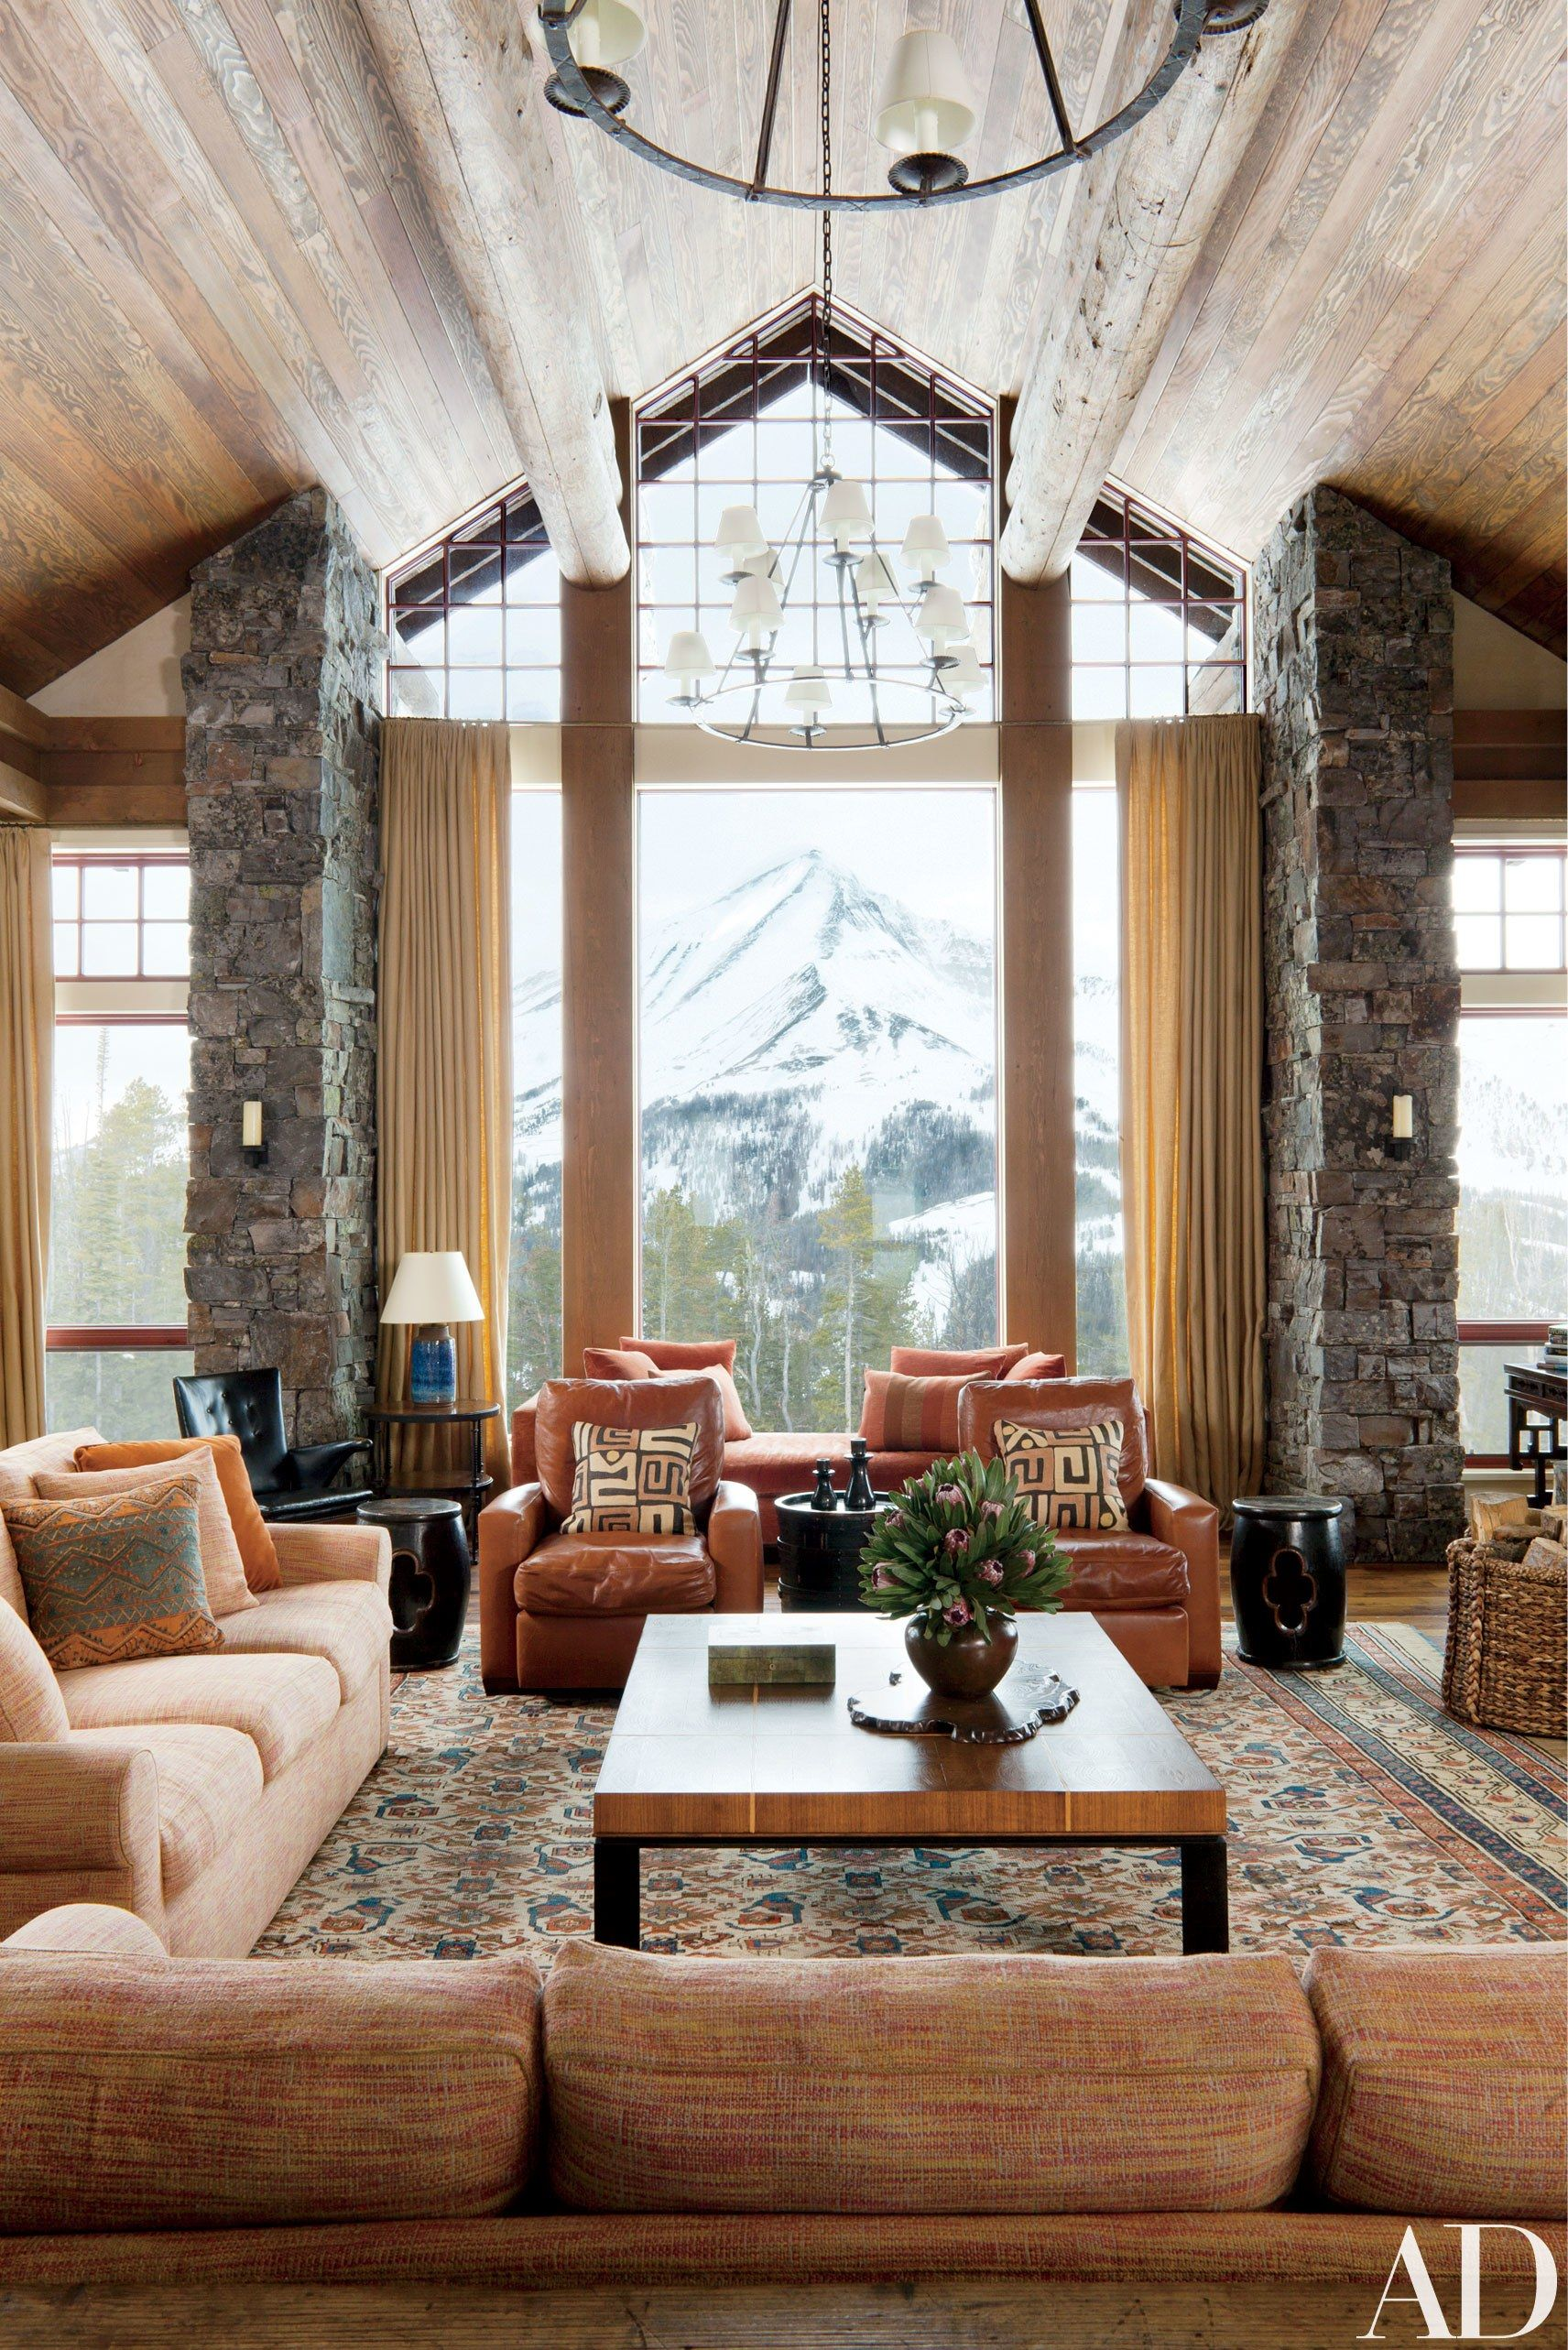 13 Utterly Inviting Rustic Living Room Ideas Living Room Decor